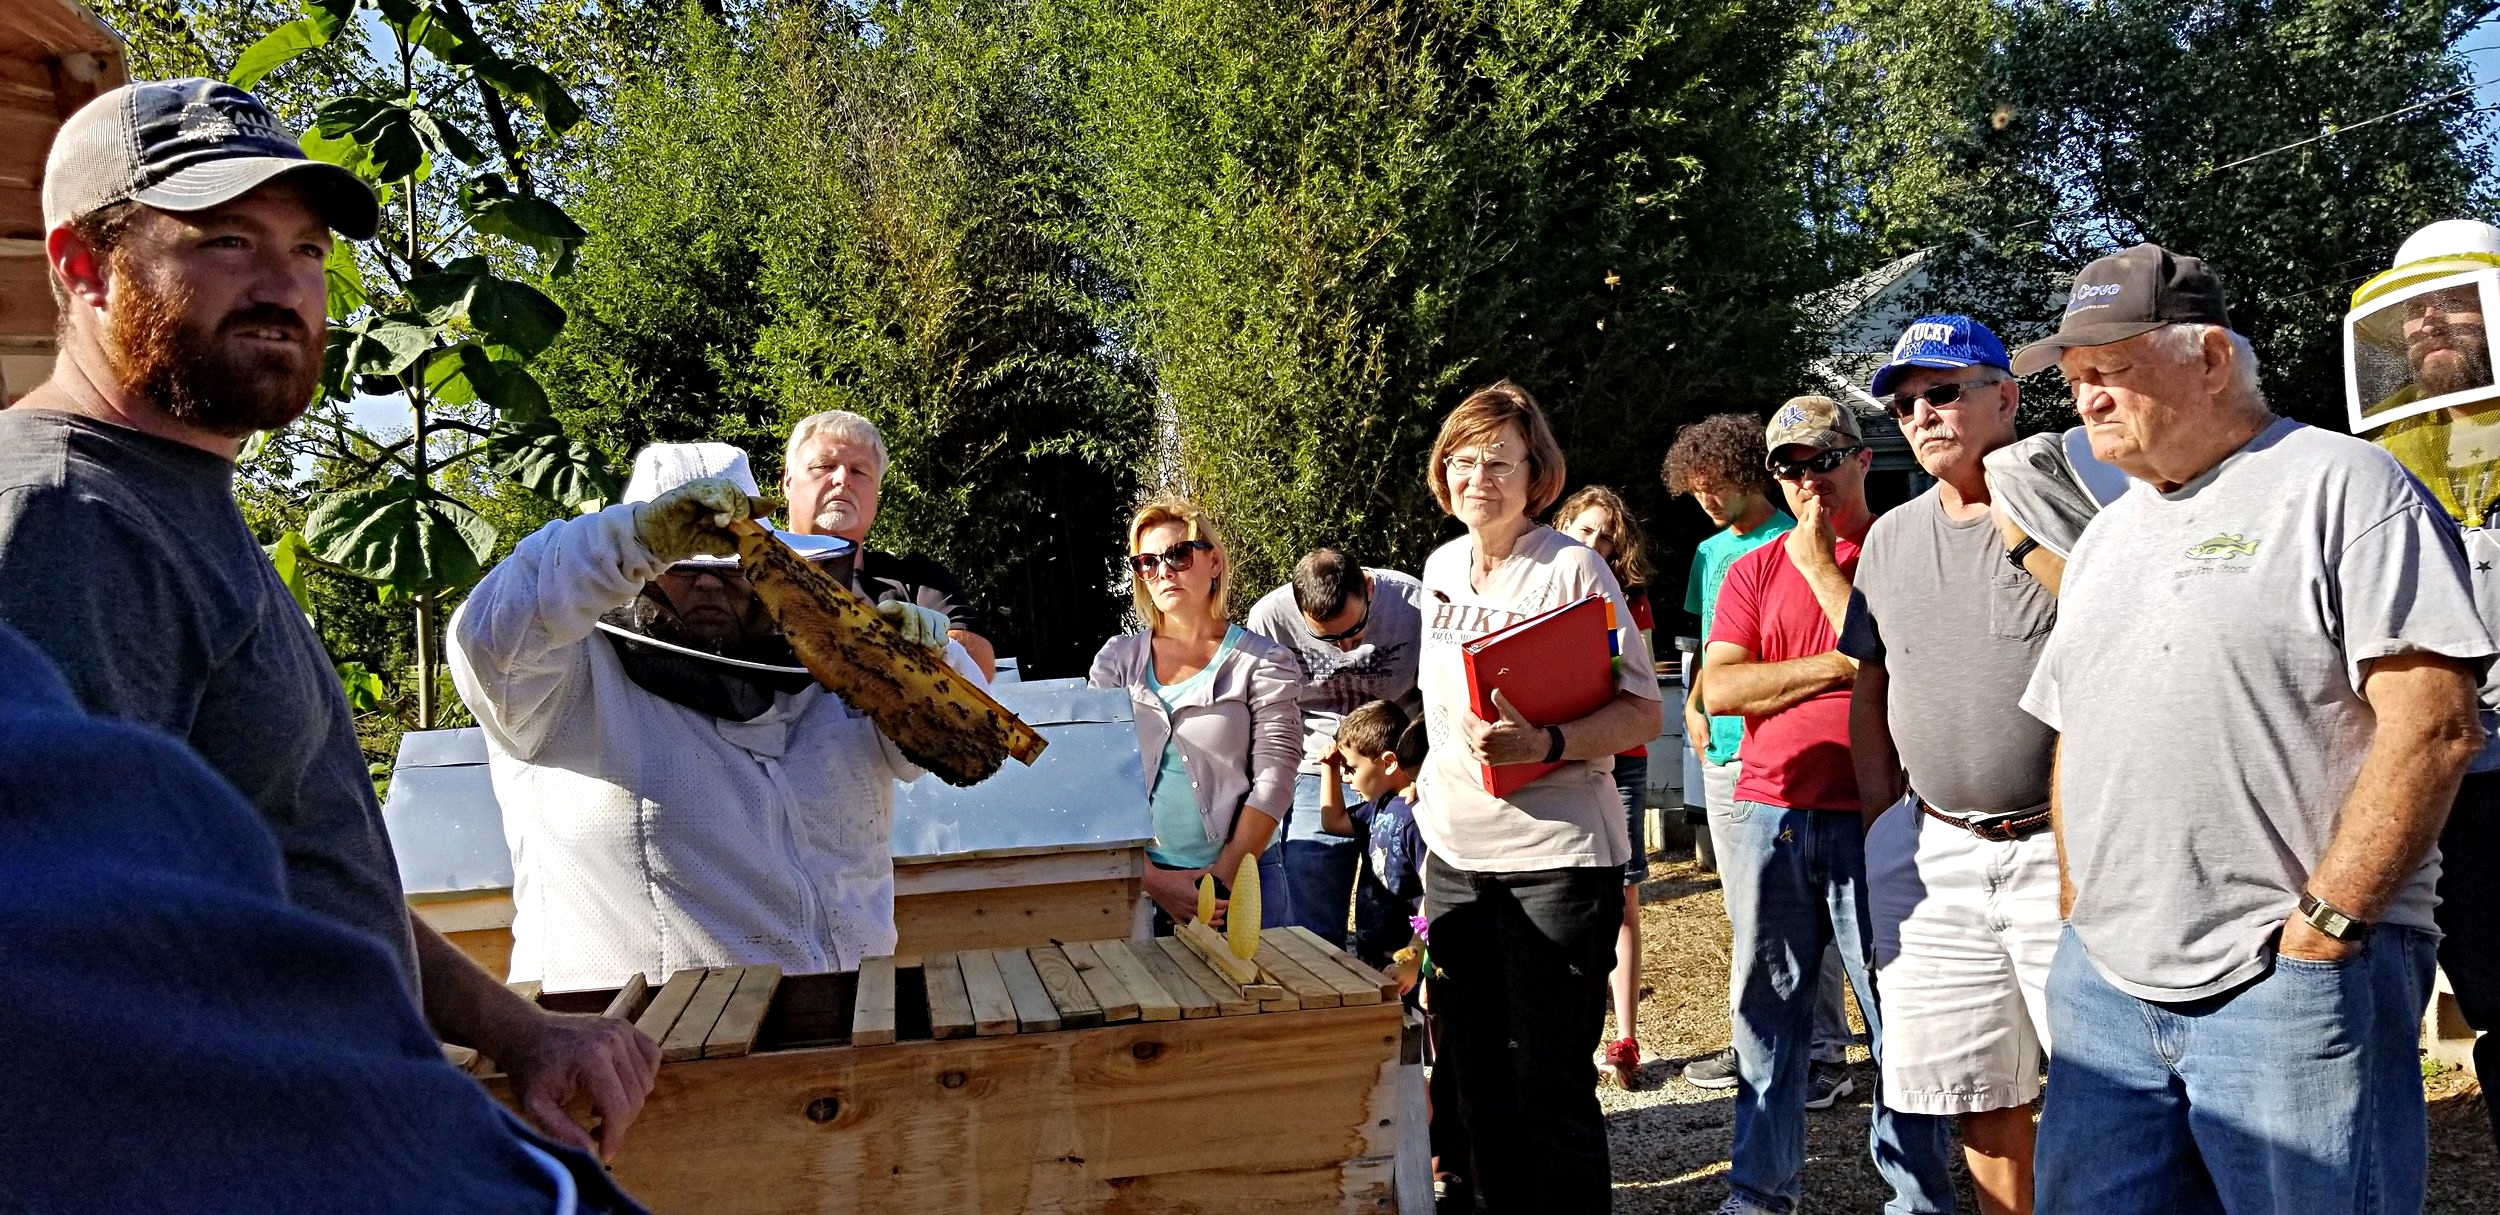 Come meet us! - We have a wonderful group of both new and experienced beekeepers! Events are open and free to the public. Membership brings added benefits.